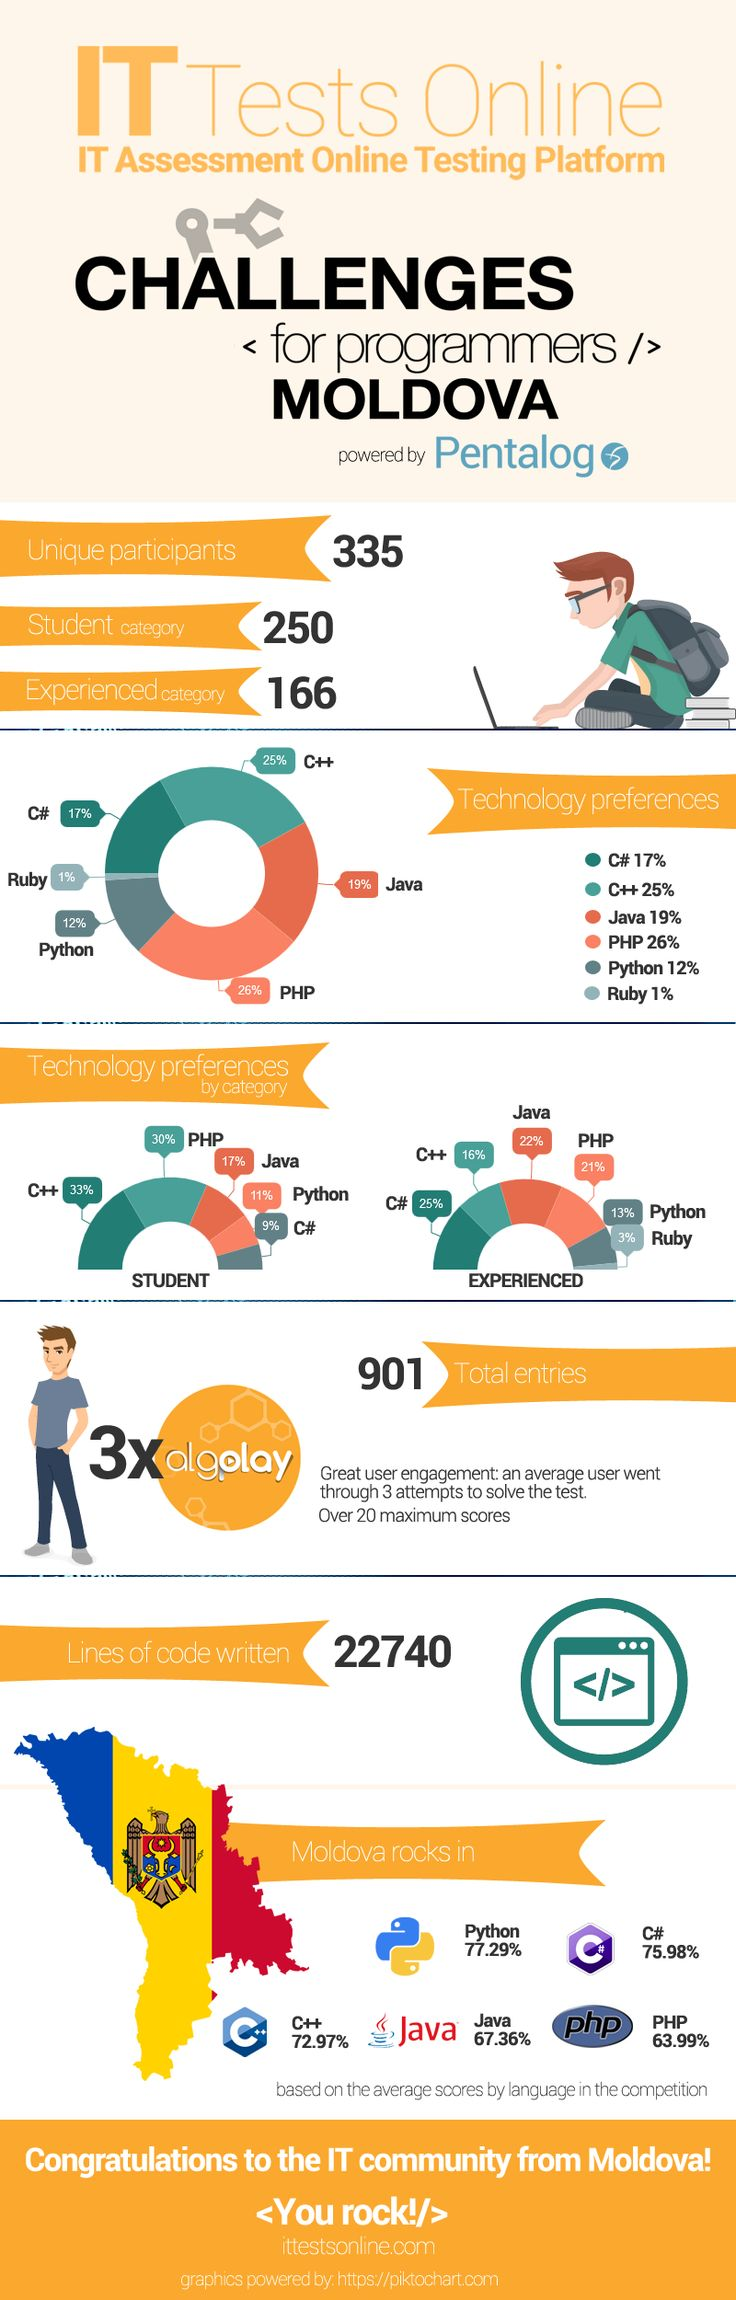 Infographic ITtestsOnline.com: Challenges for Programmers Moldova